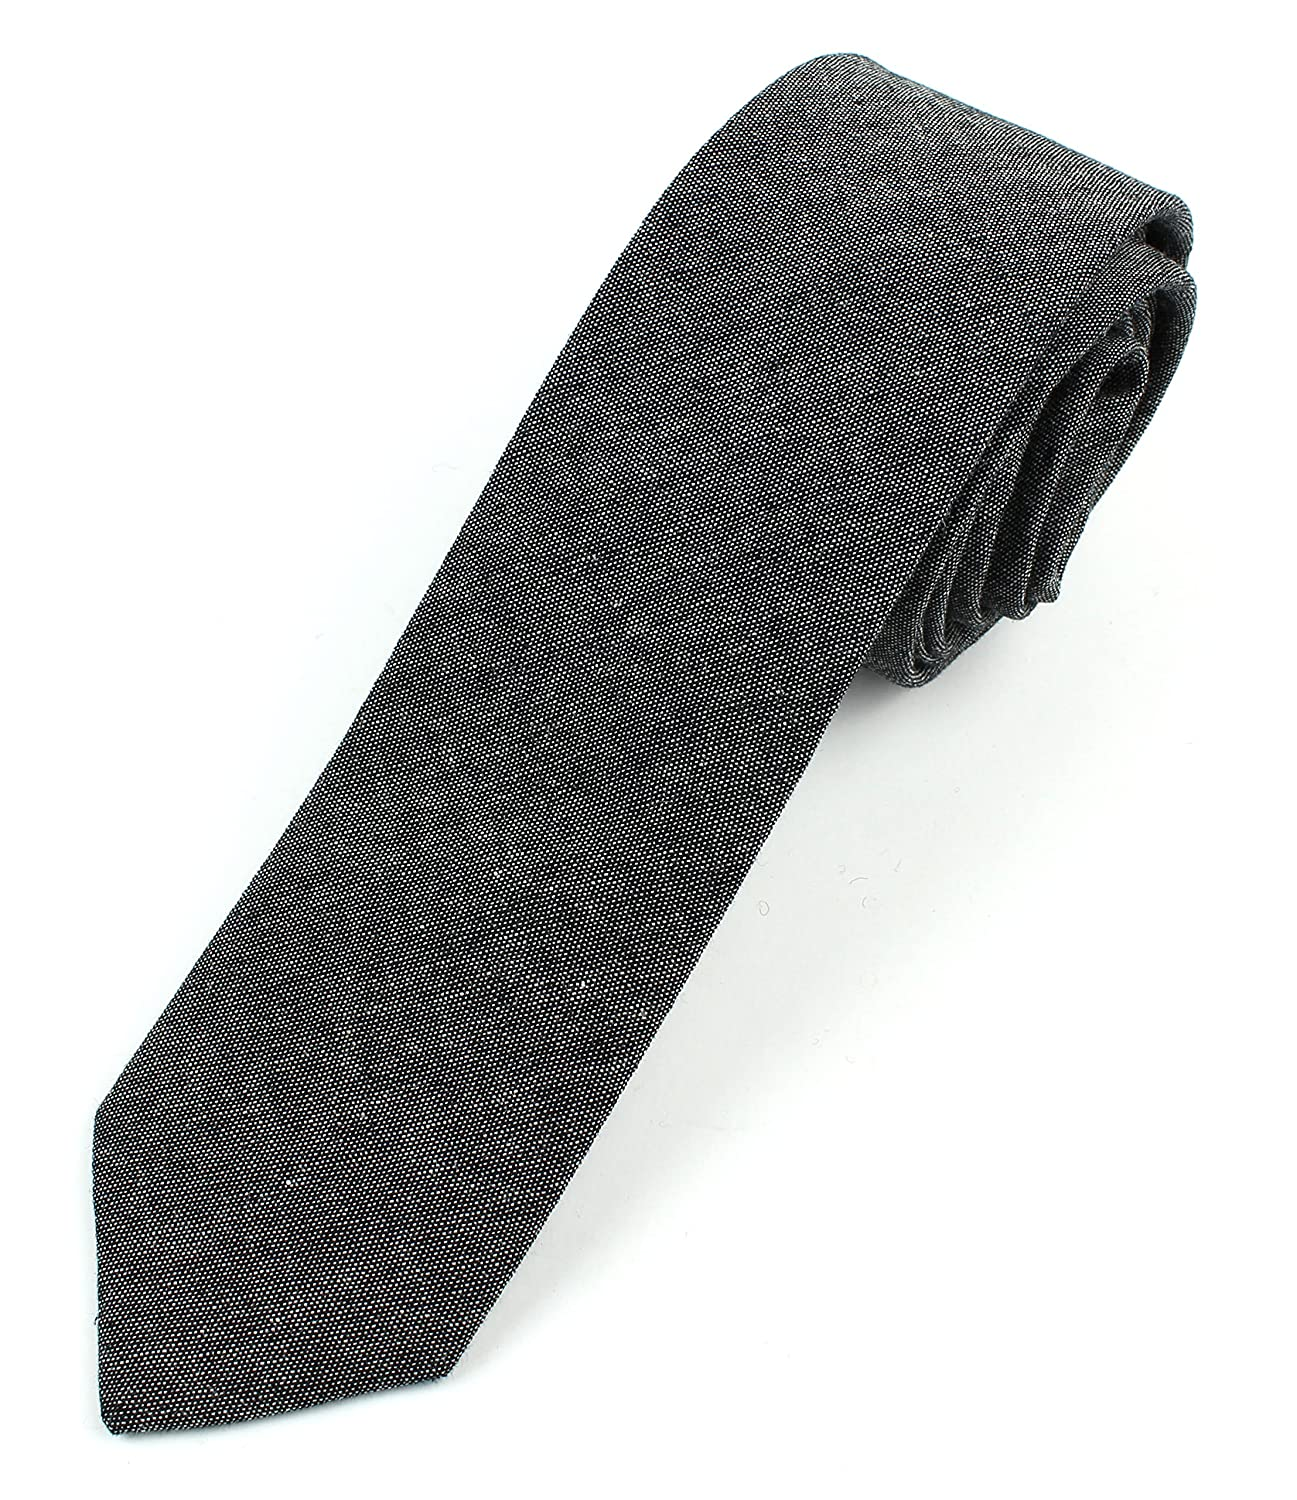 499359726af7 Men's Chambray Cotton Skinny Necktie Tie - Black at Amazon Men's Clothing  store: